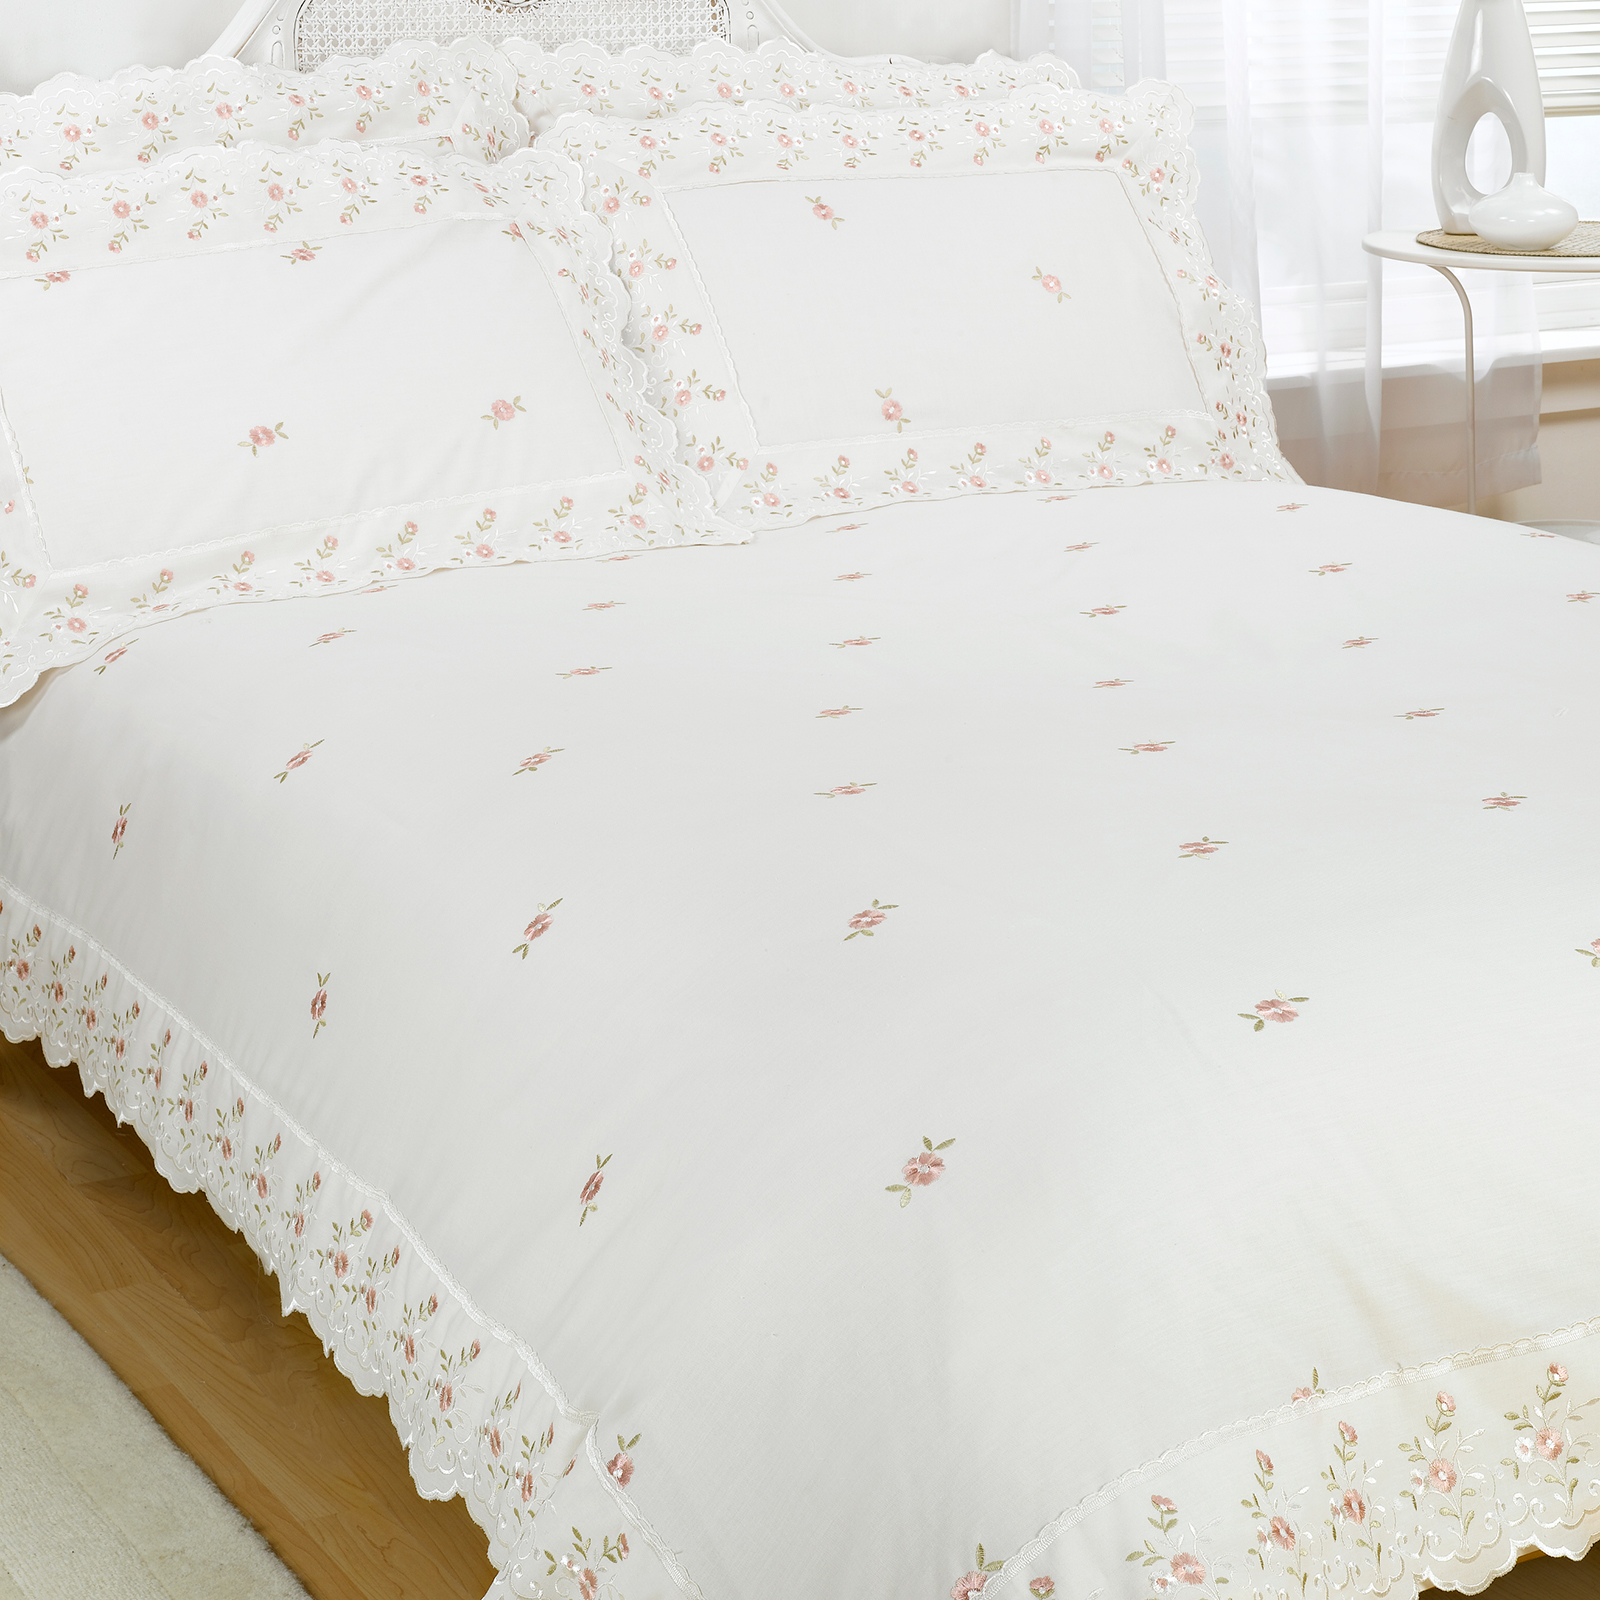 Vintage Linen Quilt Cover Vintage Lace Luxury Cotton Blend Embroidered Duvet Quilt